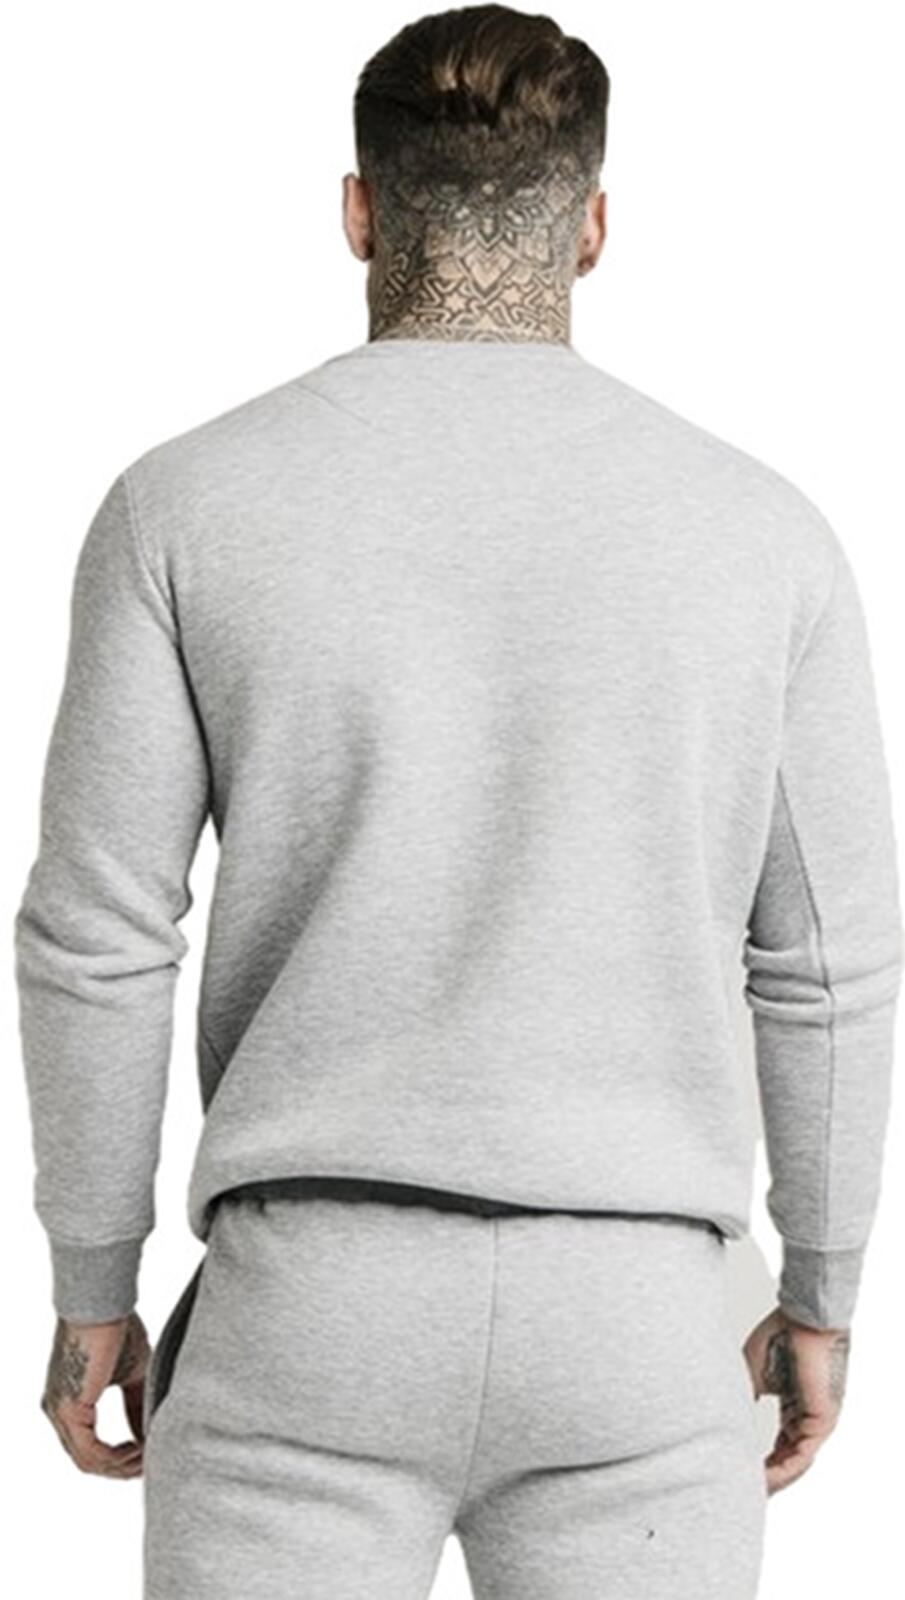 Sik Silk Sweatshirt Grey